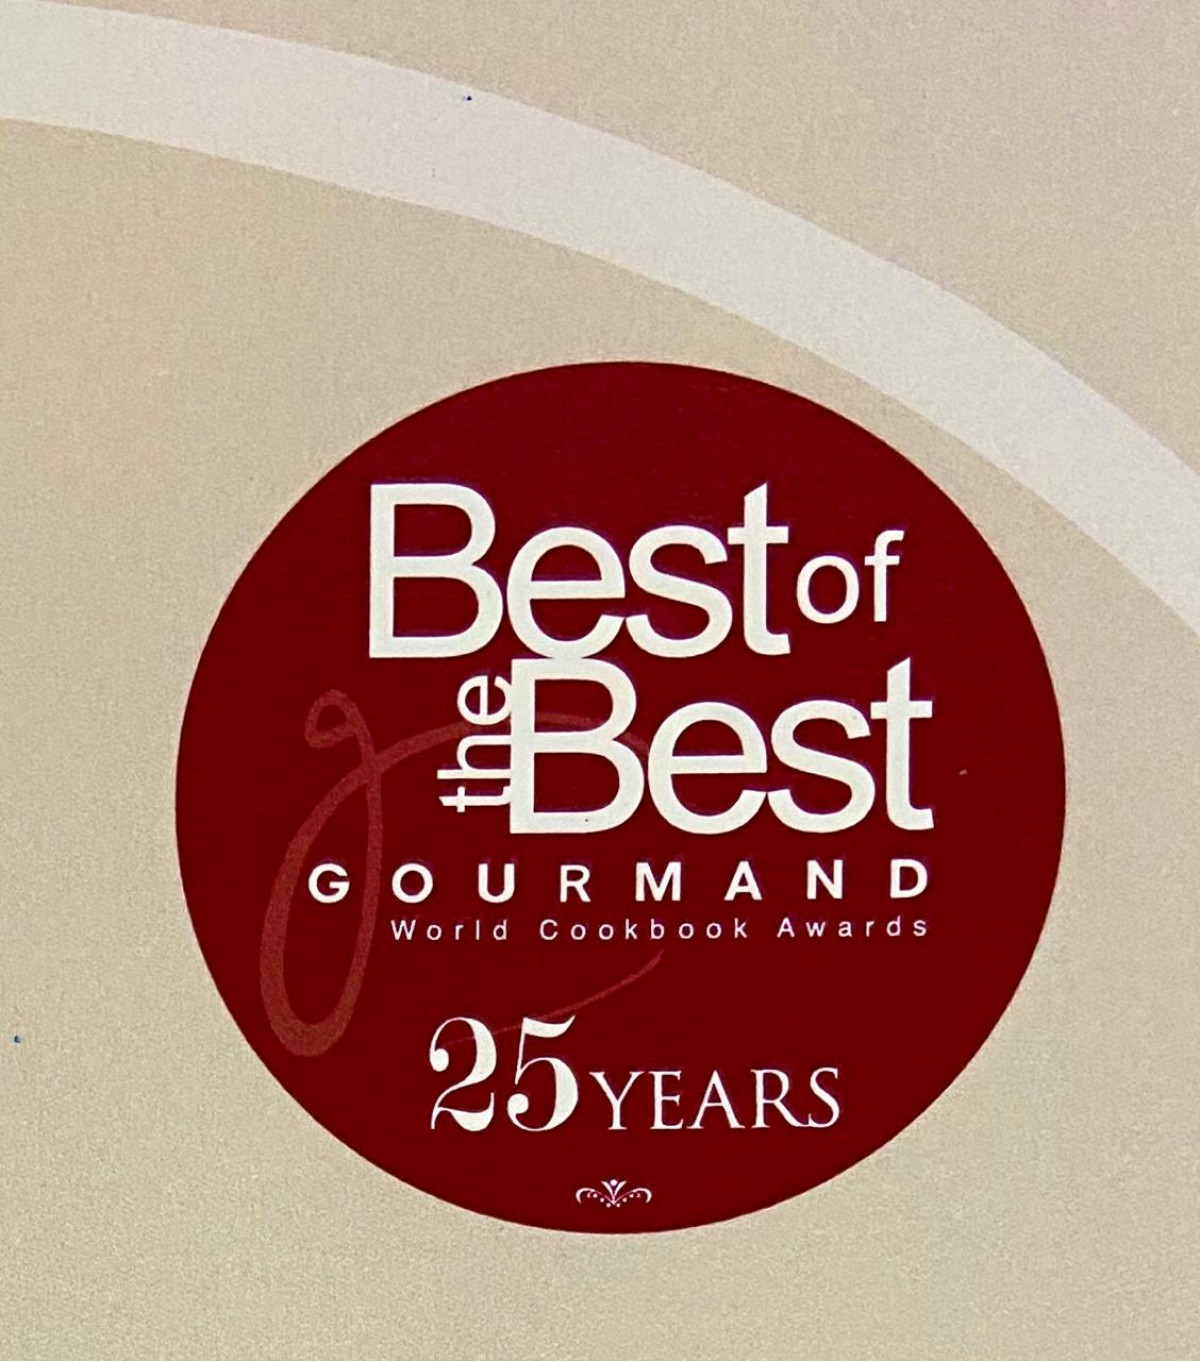 Buku Kuliner Gorontalo Masuk Dalam Gourmand World Cook Book Awards Best of the Best 1995-2020